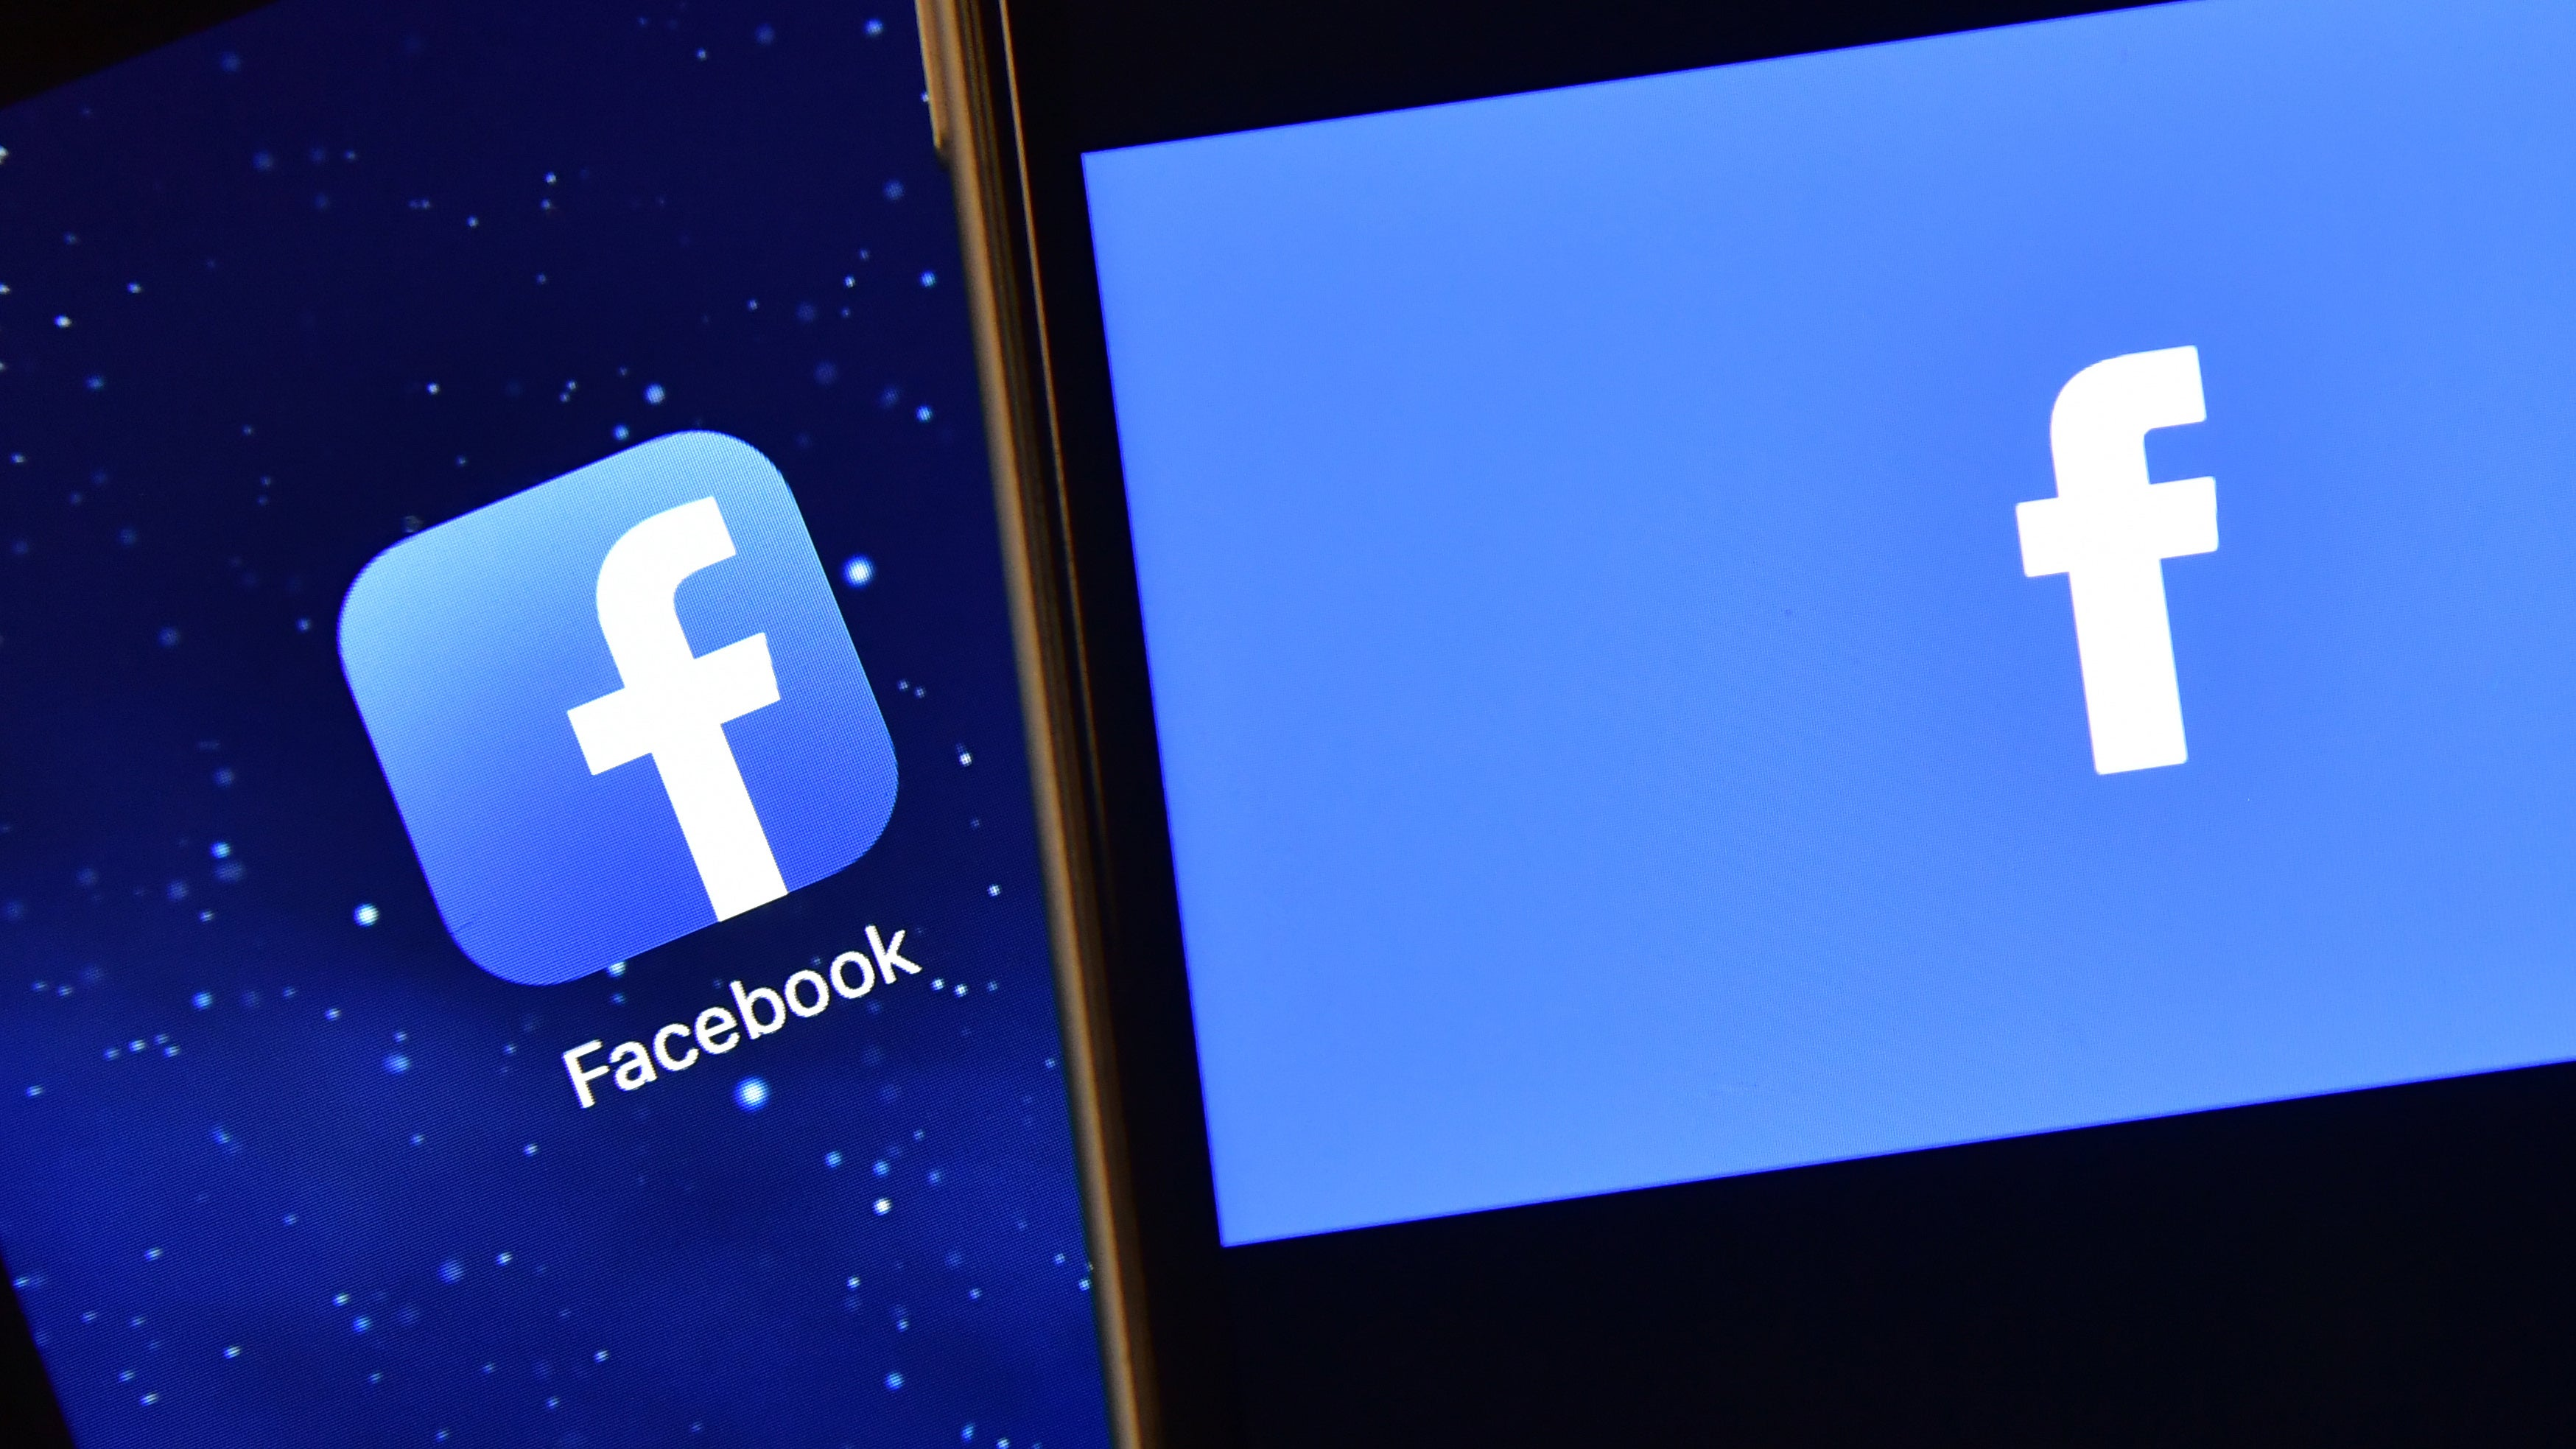 Facebook Handed Over Data On 'Insecure' And 'Overwhelmed' Australian Teenagers To Advertisers